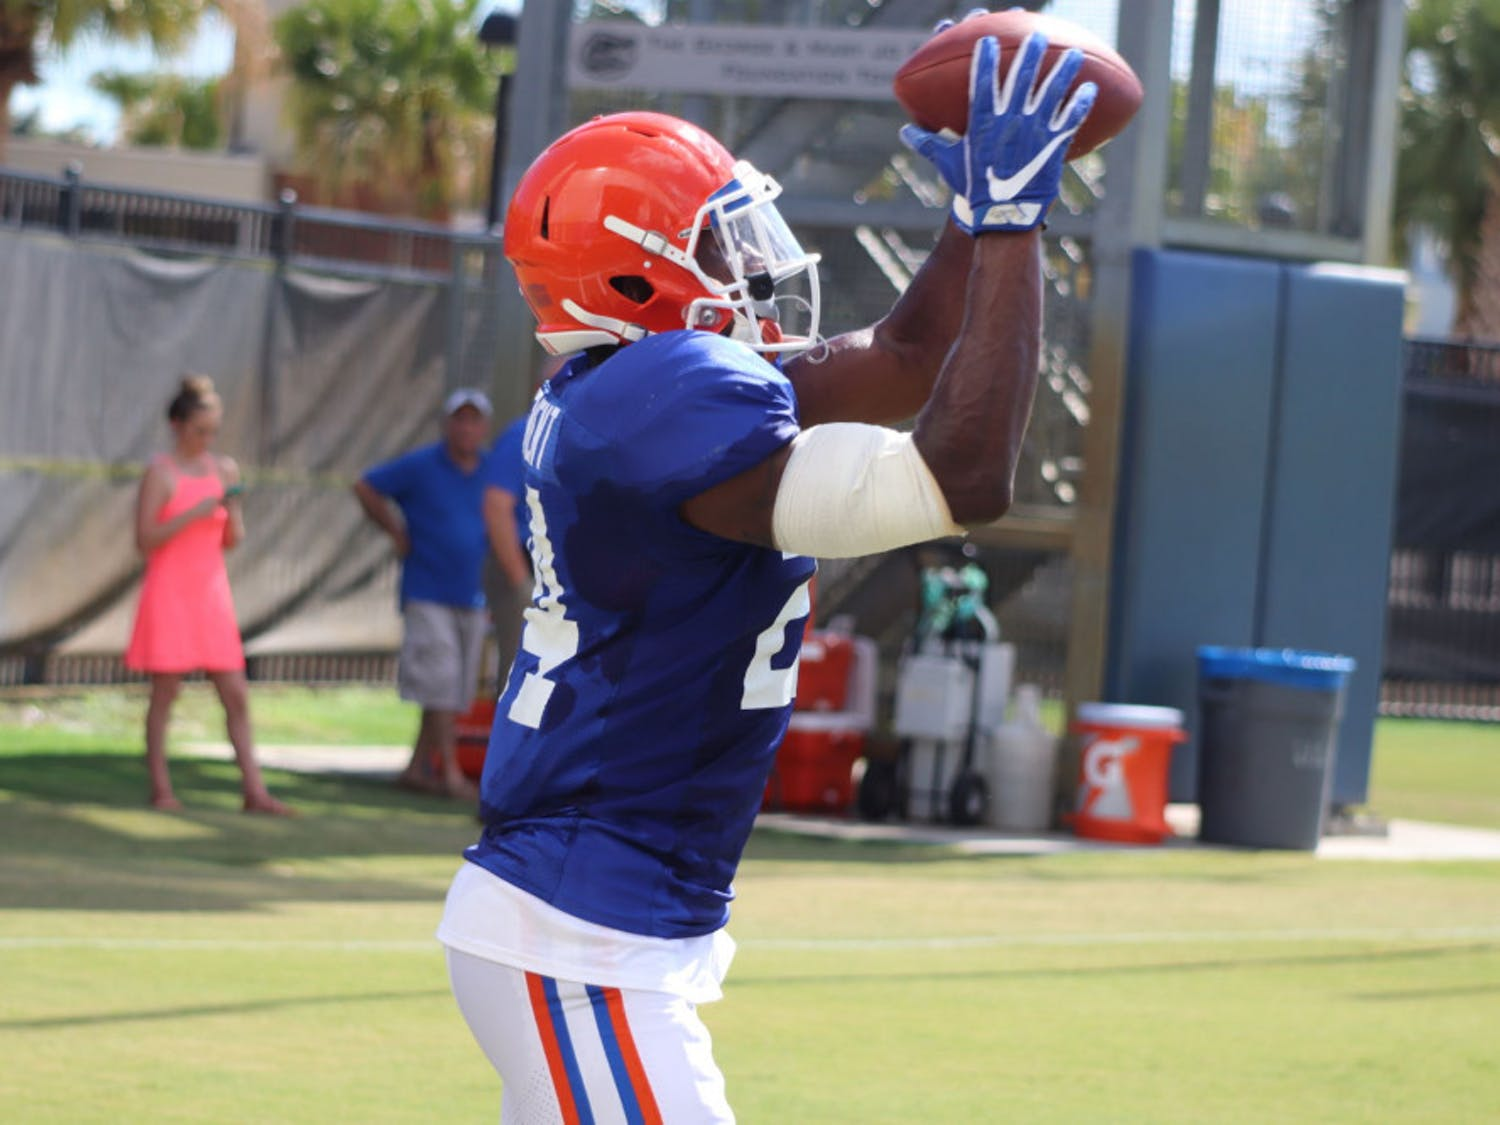 Gators running back Iverson Clement played against Charleston Southern in the season opener. He had one carry for five yards.